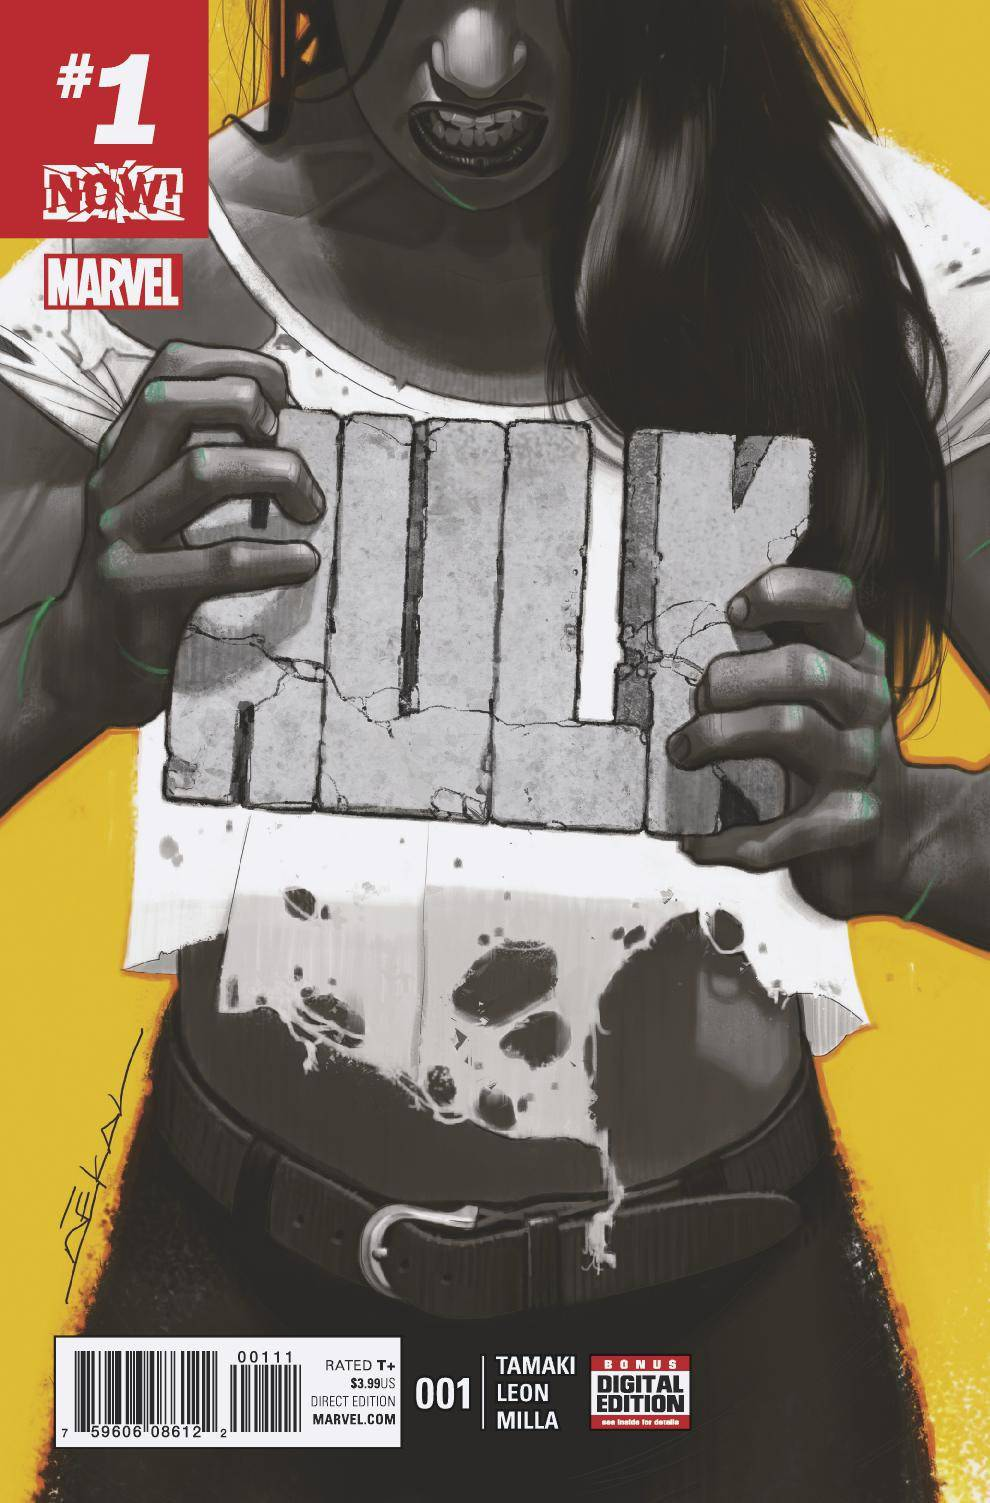 Cover Art by Jeff Dekal